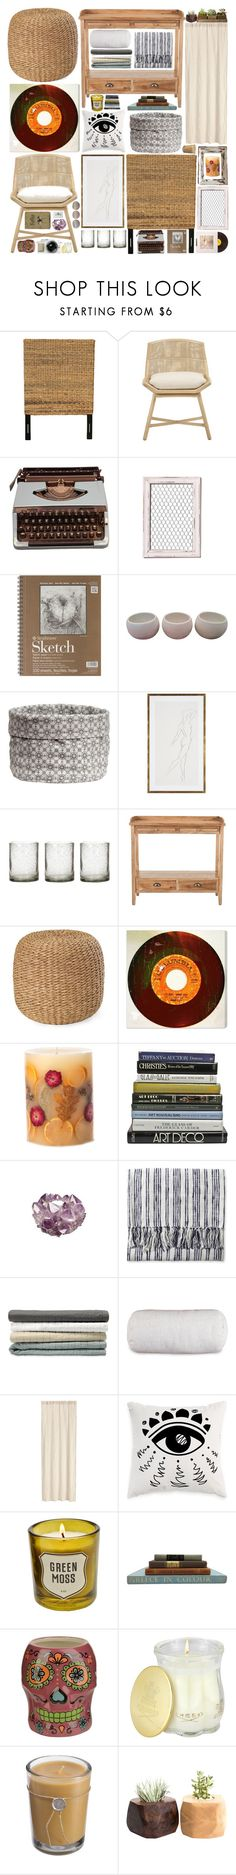 """""""Vintage Bedroom"""" by belenloperfido ❤ liked on Polyvore featuring interior, interiors, interior design, home, home decor, interior decorating, Jeffan, McGuire, Zolà and H&M"""